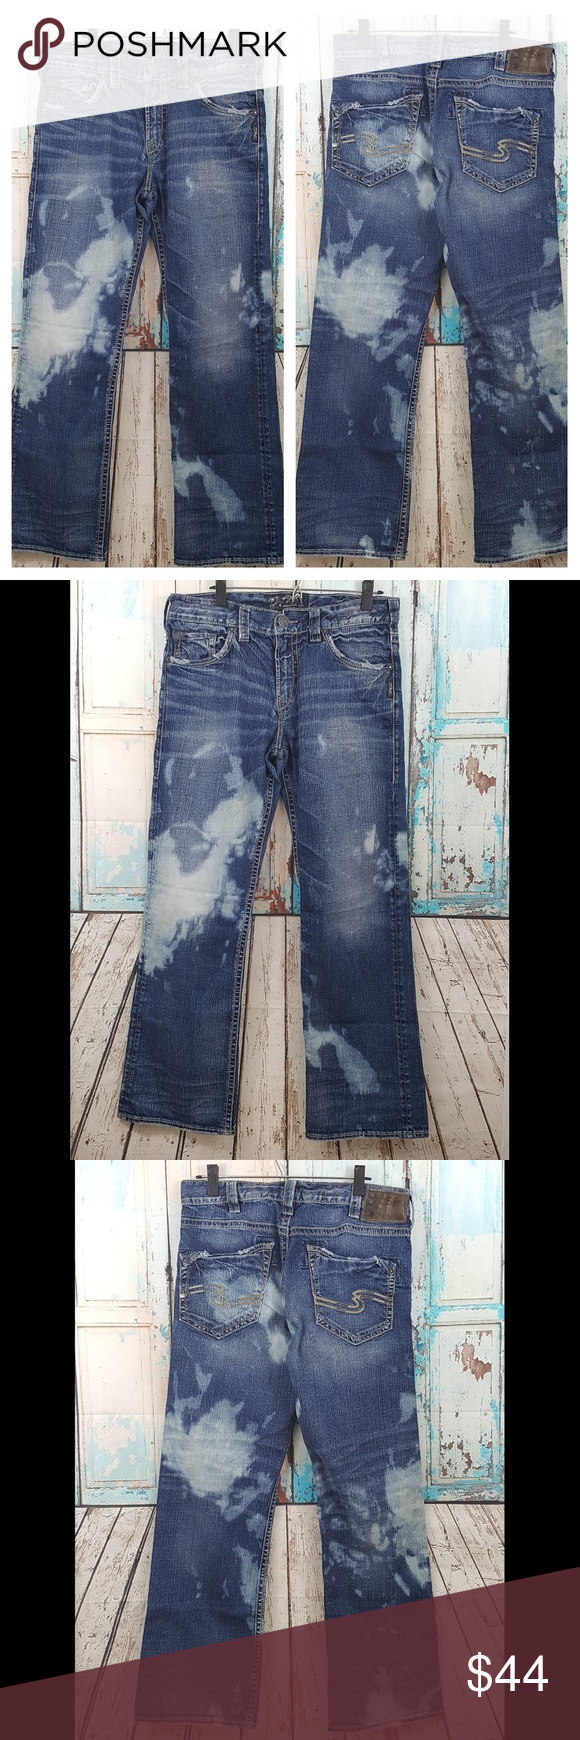 d2cf733c Silver Zac Relaxed Fit Jeans Bleach Wash Mens Zac Silver Jeans Relax Fit  Denim Jeans Size